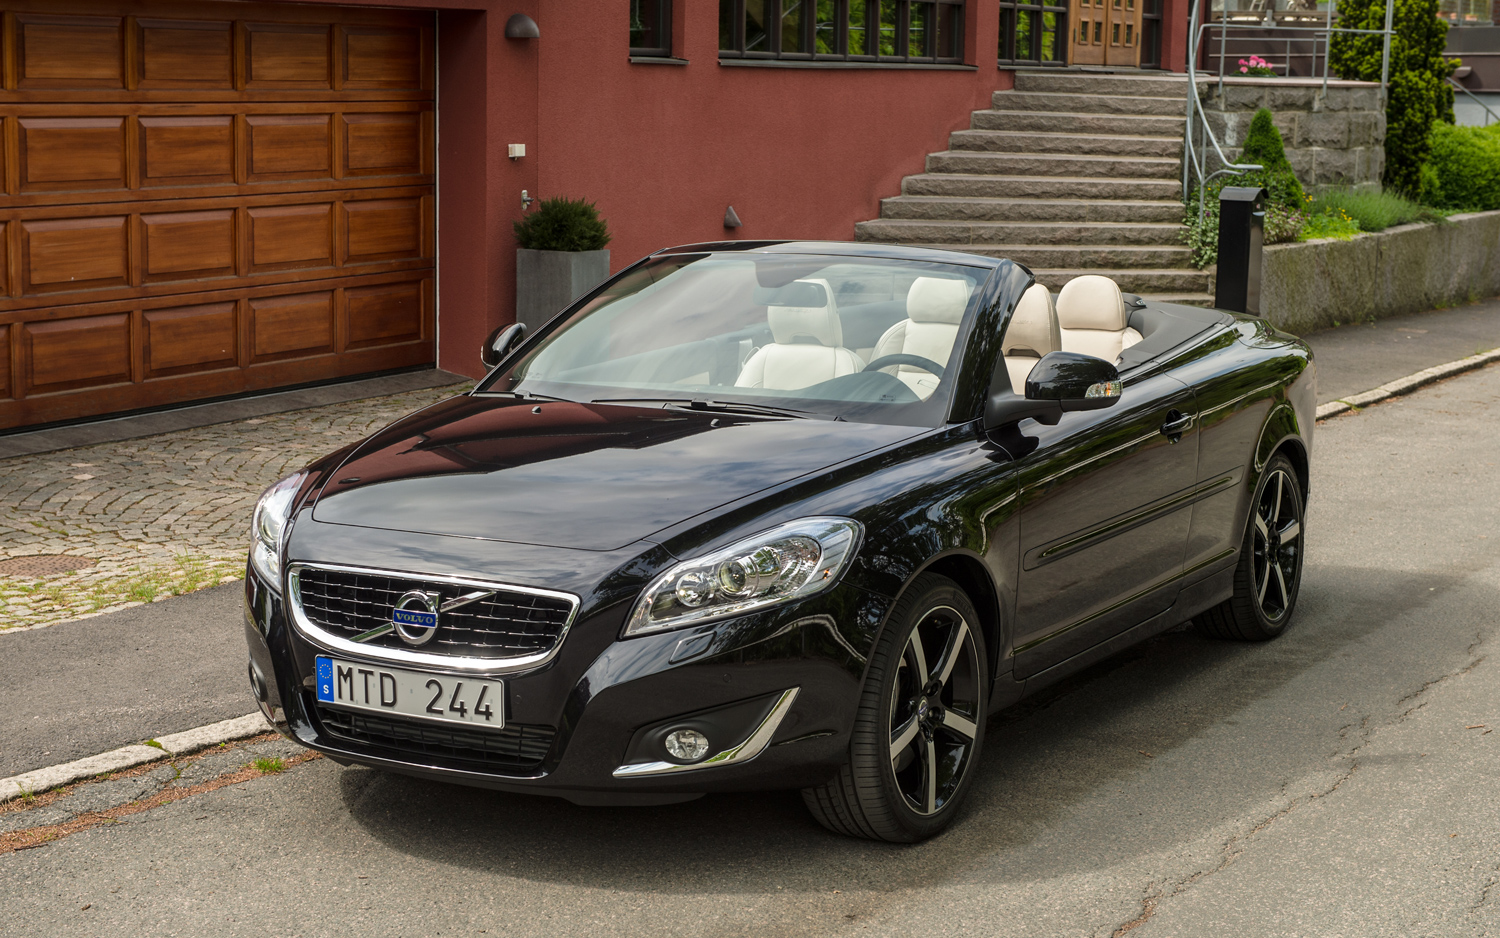 2019 Volvo C70 Convertible | Car Photos Catalog 2019